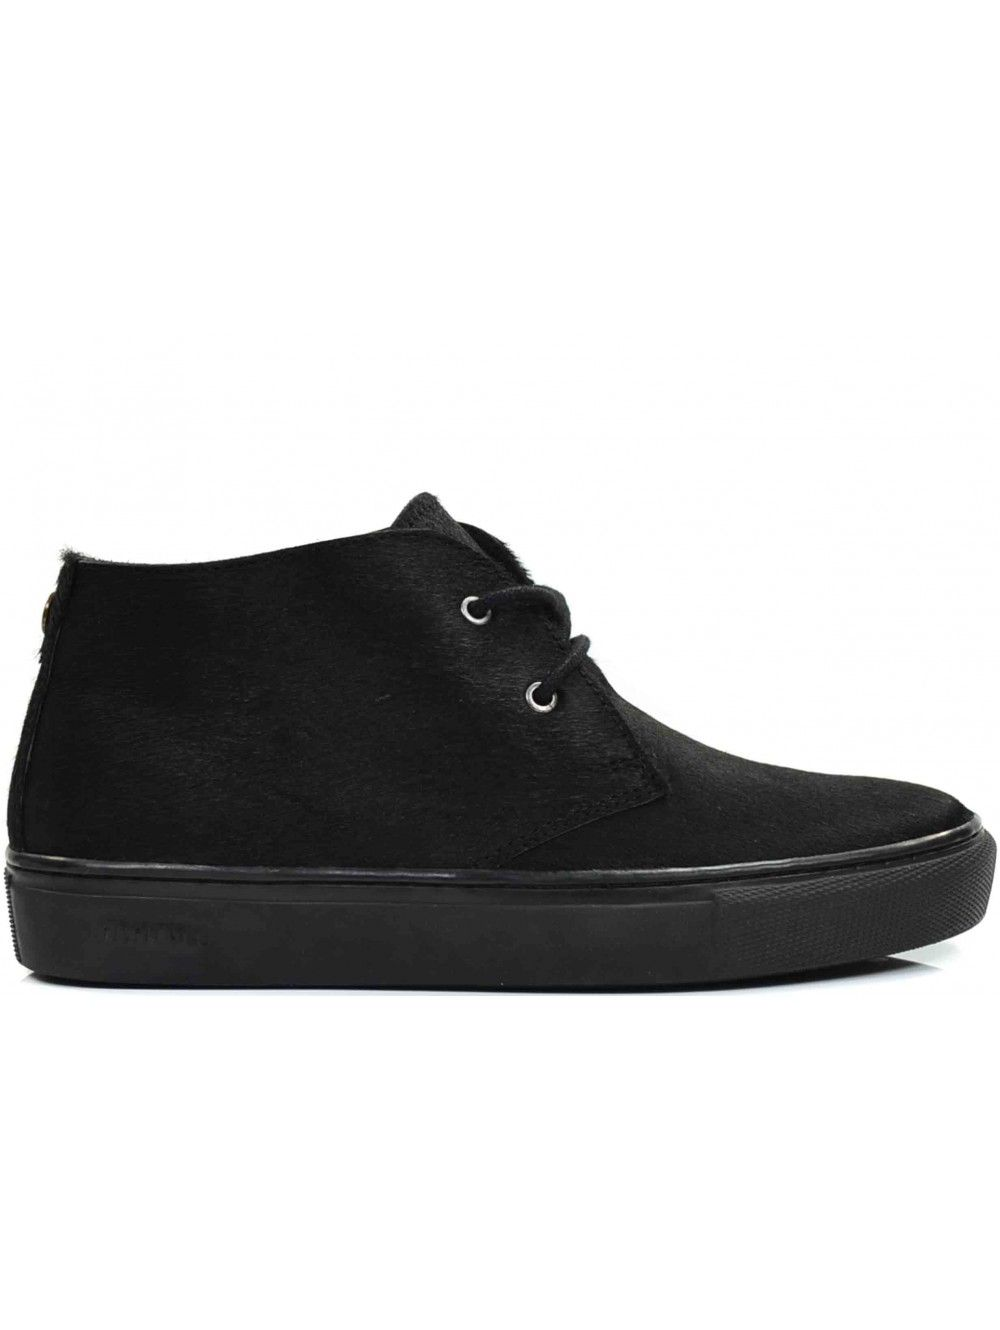 Chaussures Noir HyCAool0